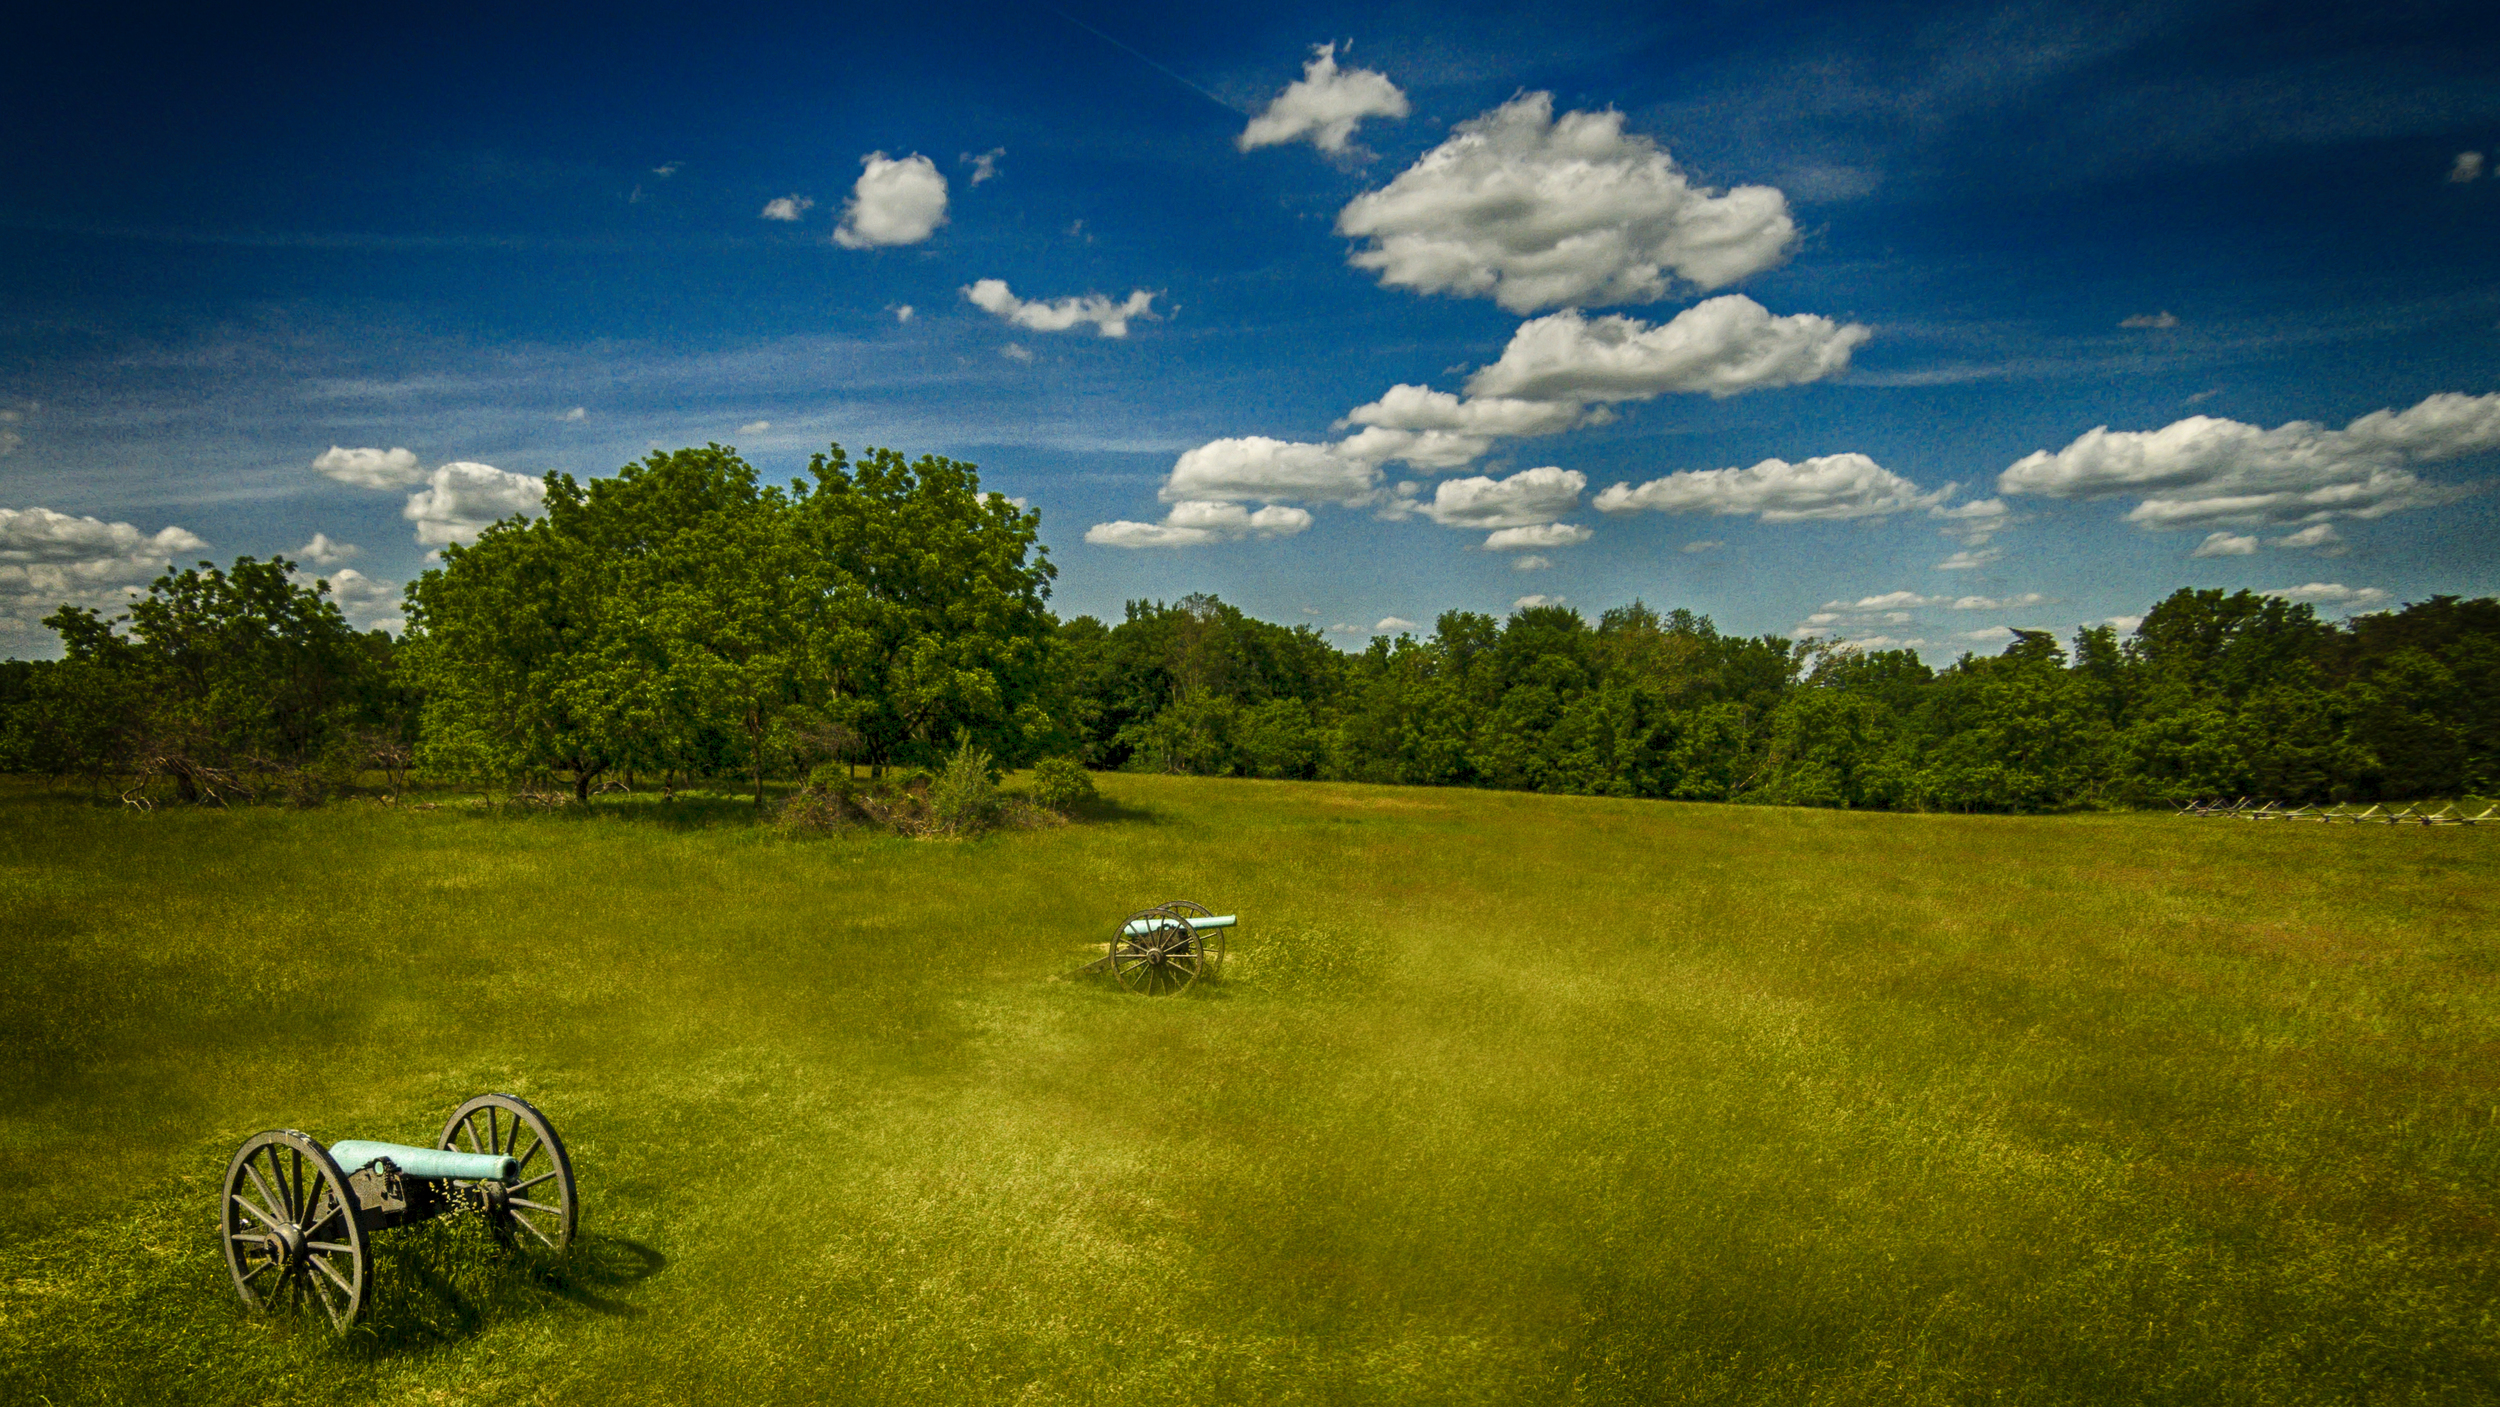 Two canons overlooking the battlefield - edited with Adobe Photoshop and Nik Software